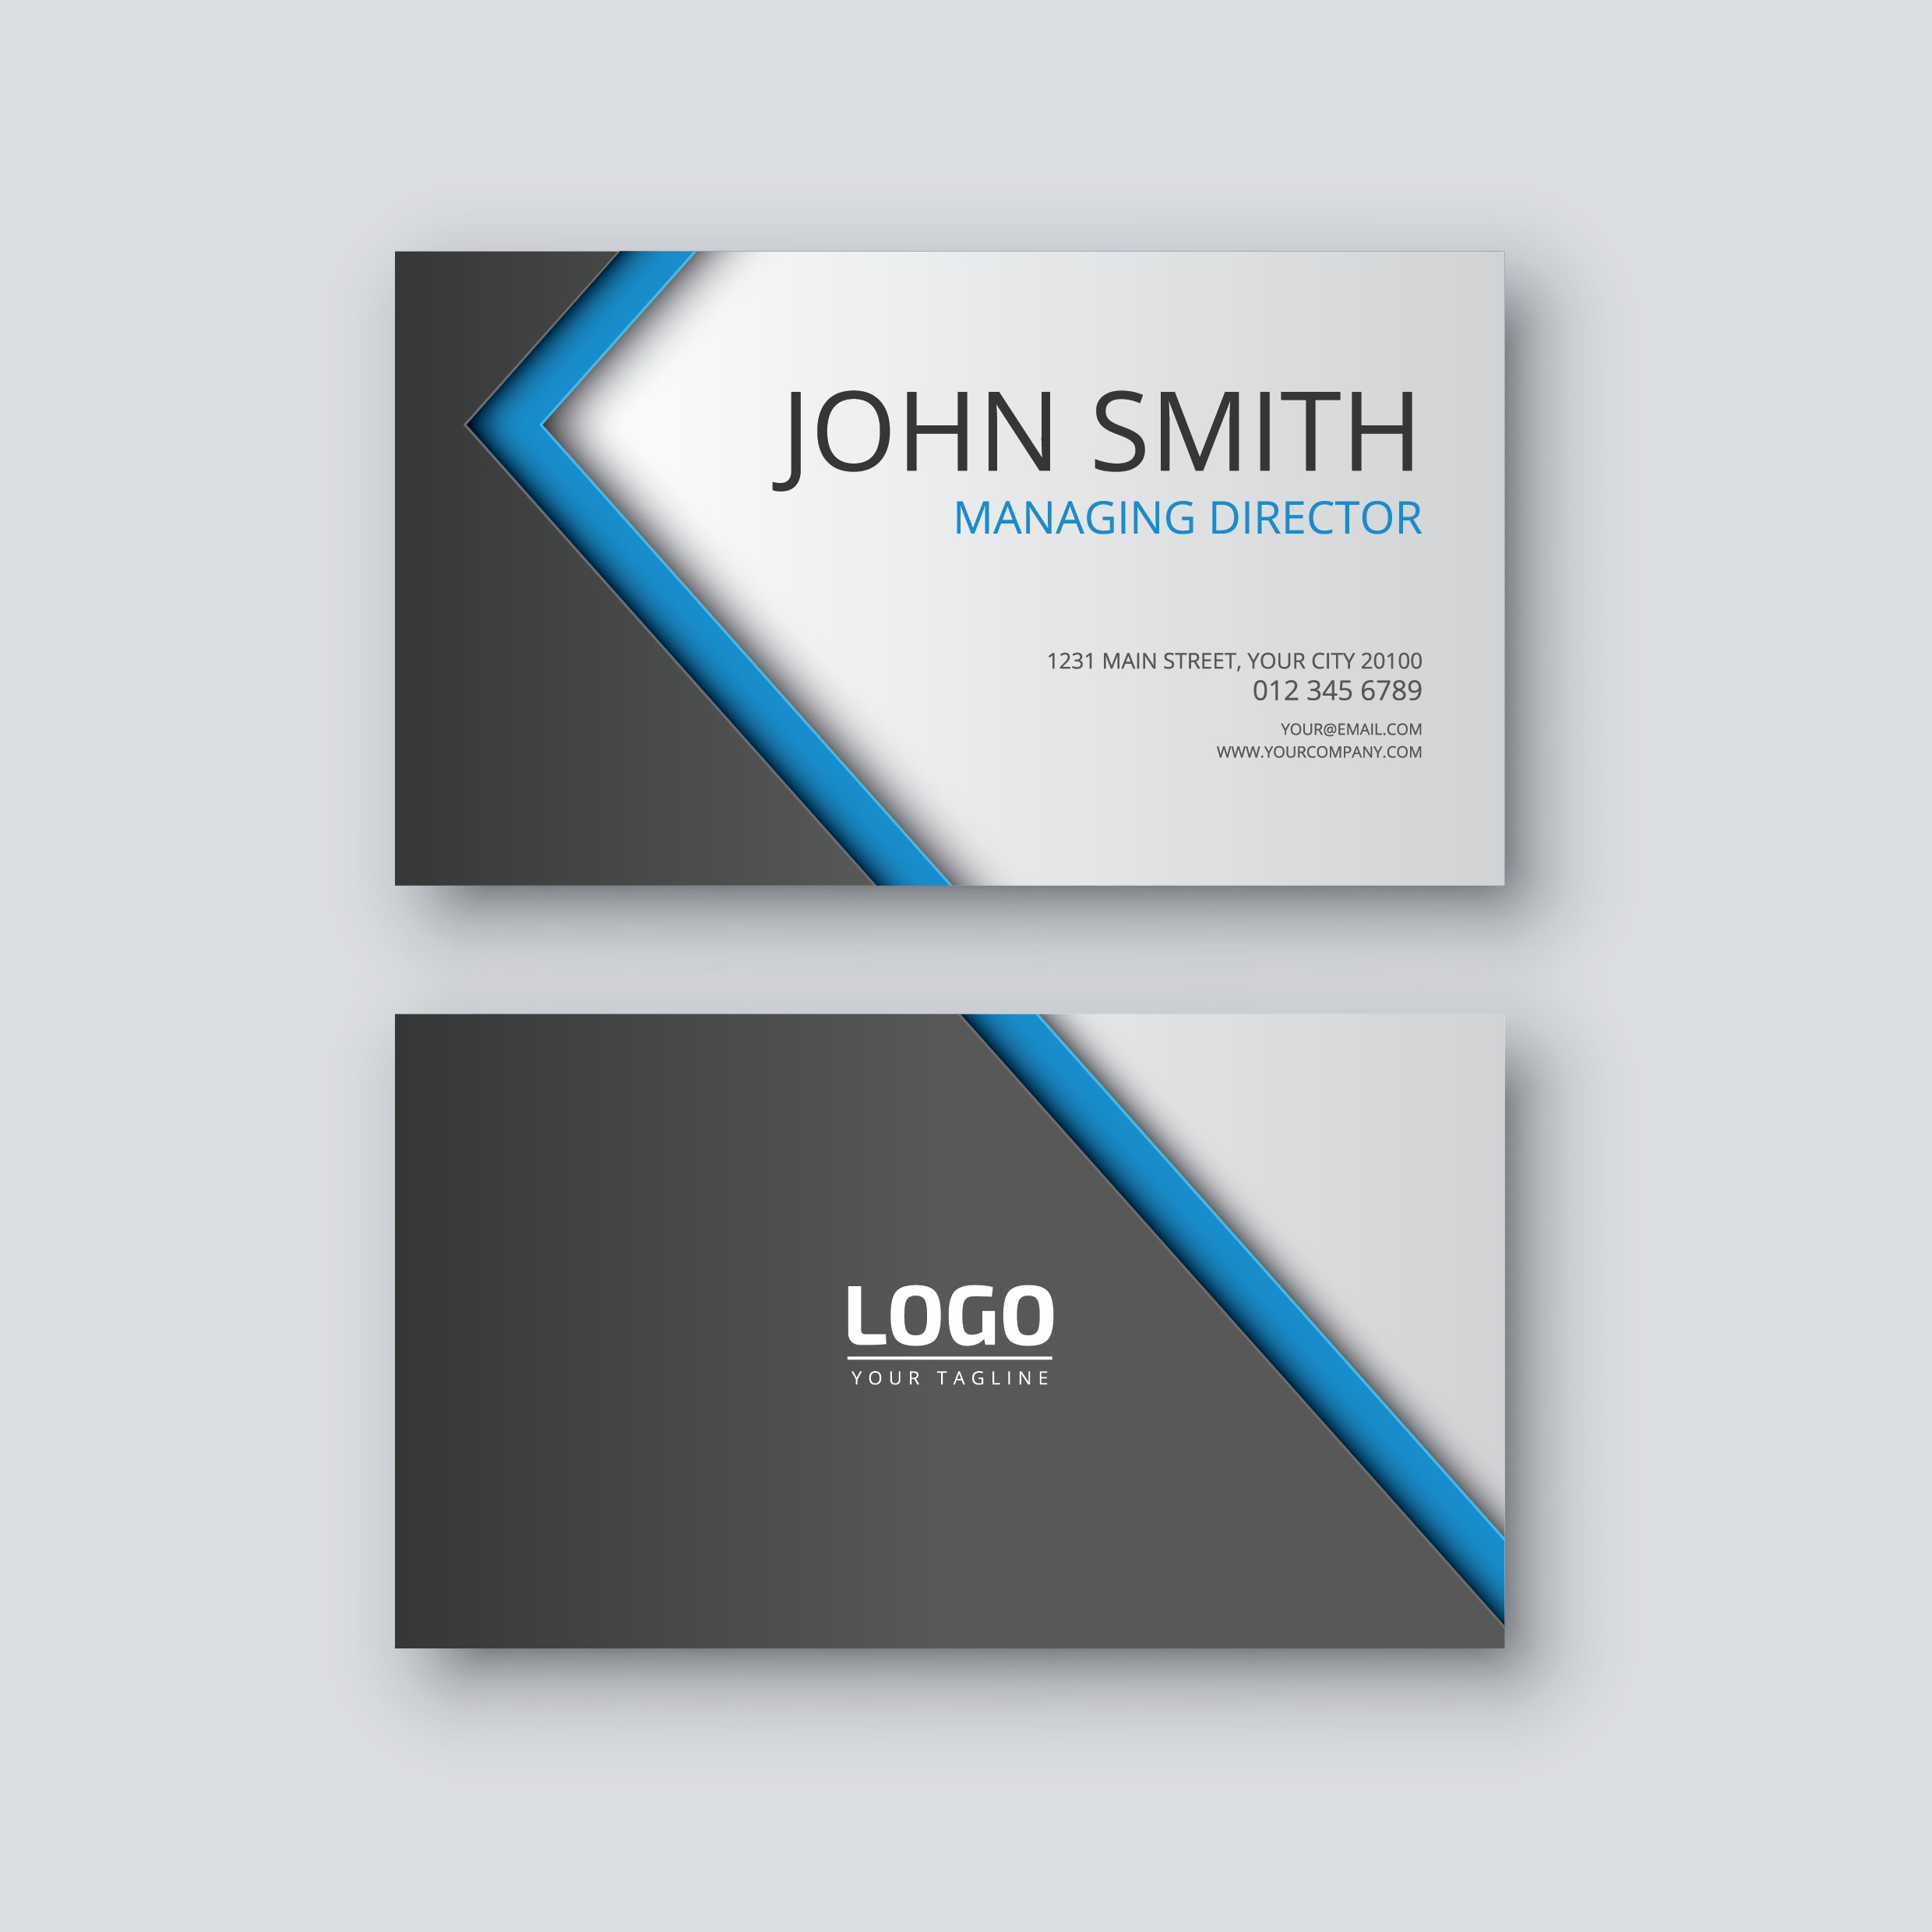 How To Design A Stunning Business Card In Photoshop